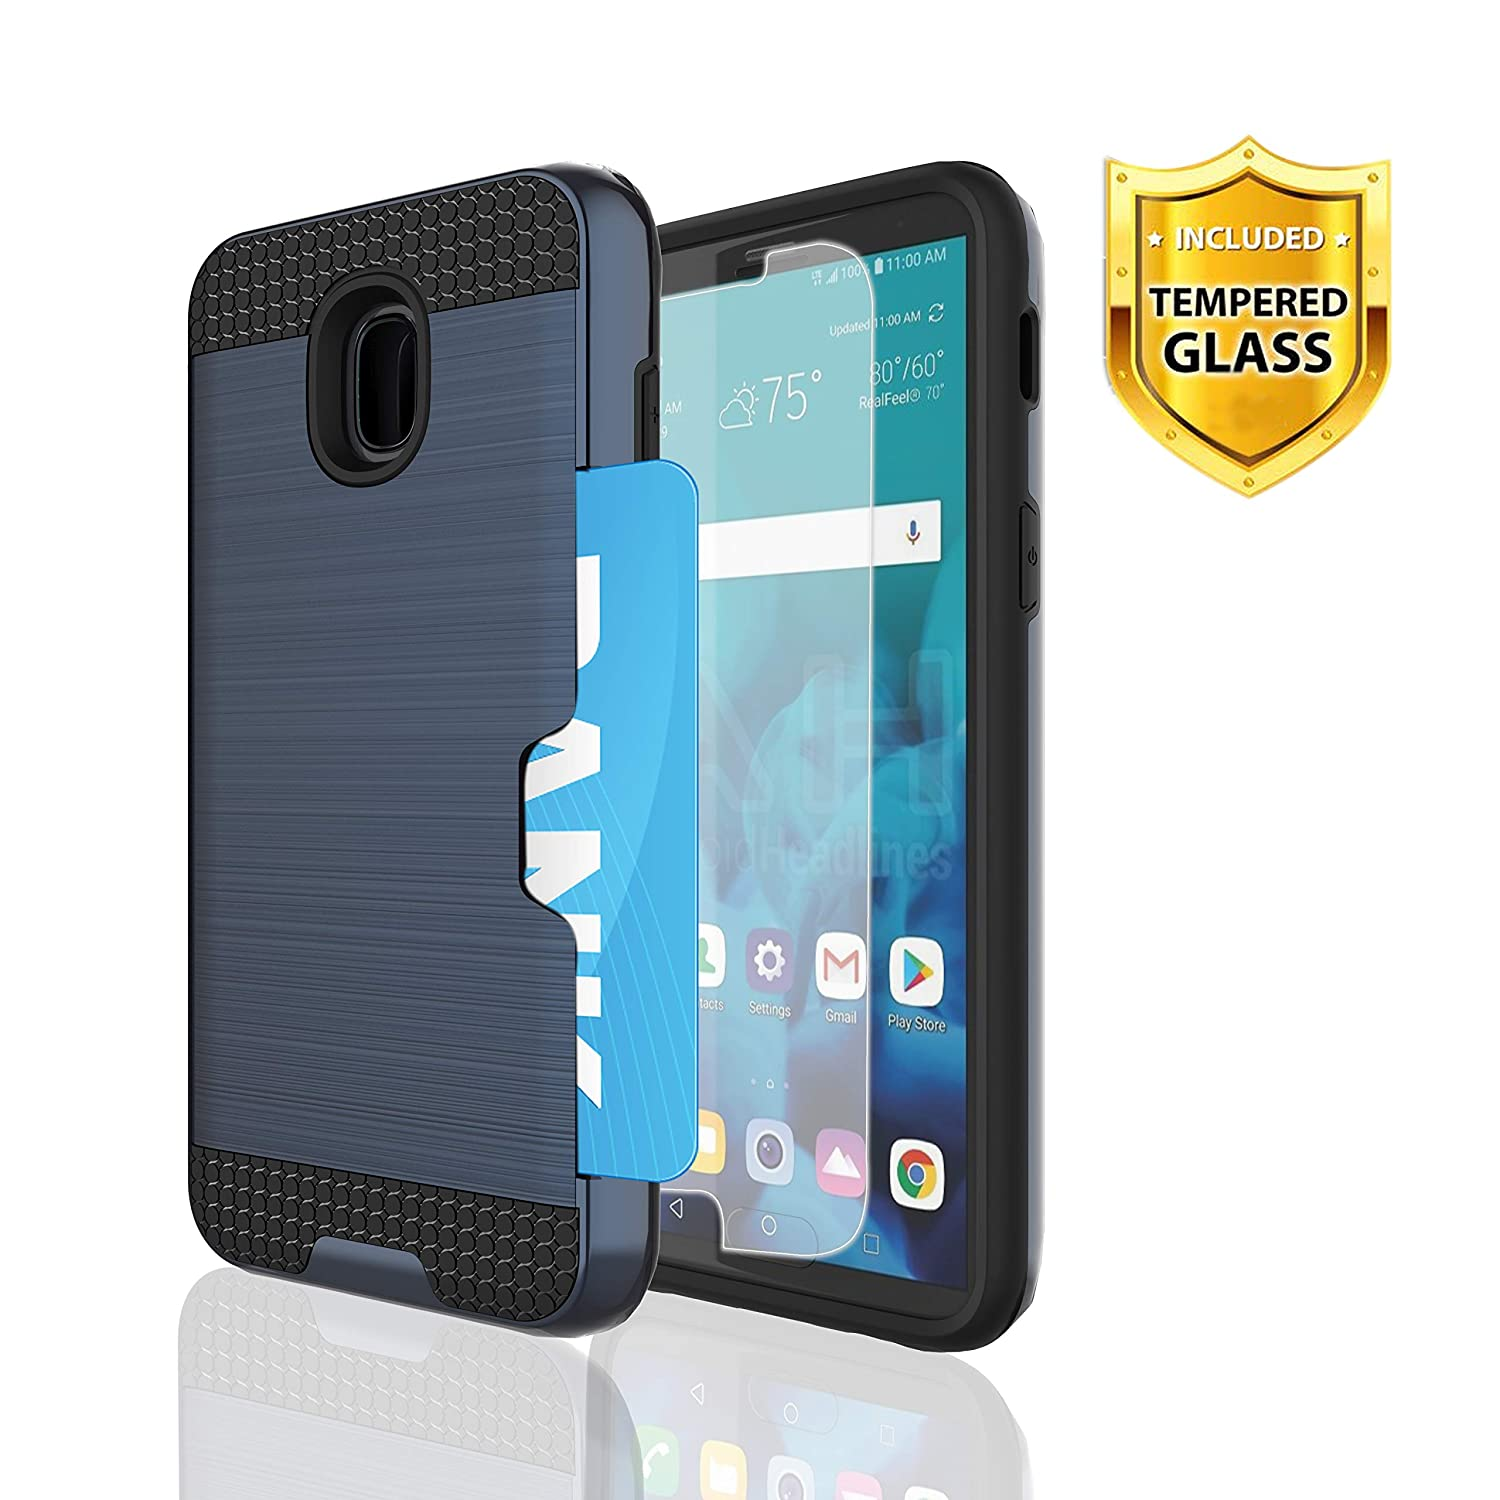 Samsung Galaxy J7 2018 Phone Case,WINGLIKE [Credit Card Slots Holder]  PC+TPU Silicone Shockproof Double Protective Cover with [Glass Screen  Protector]